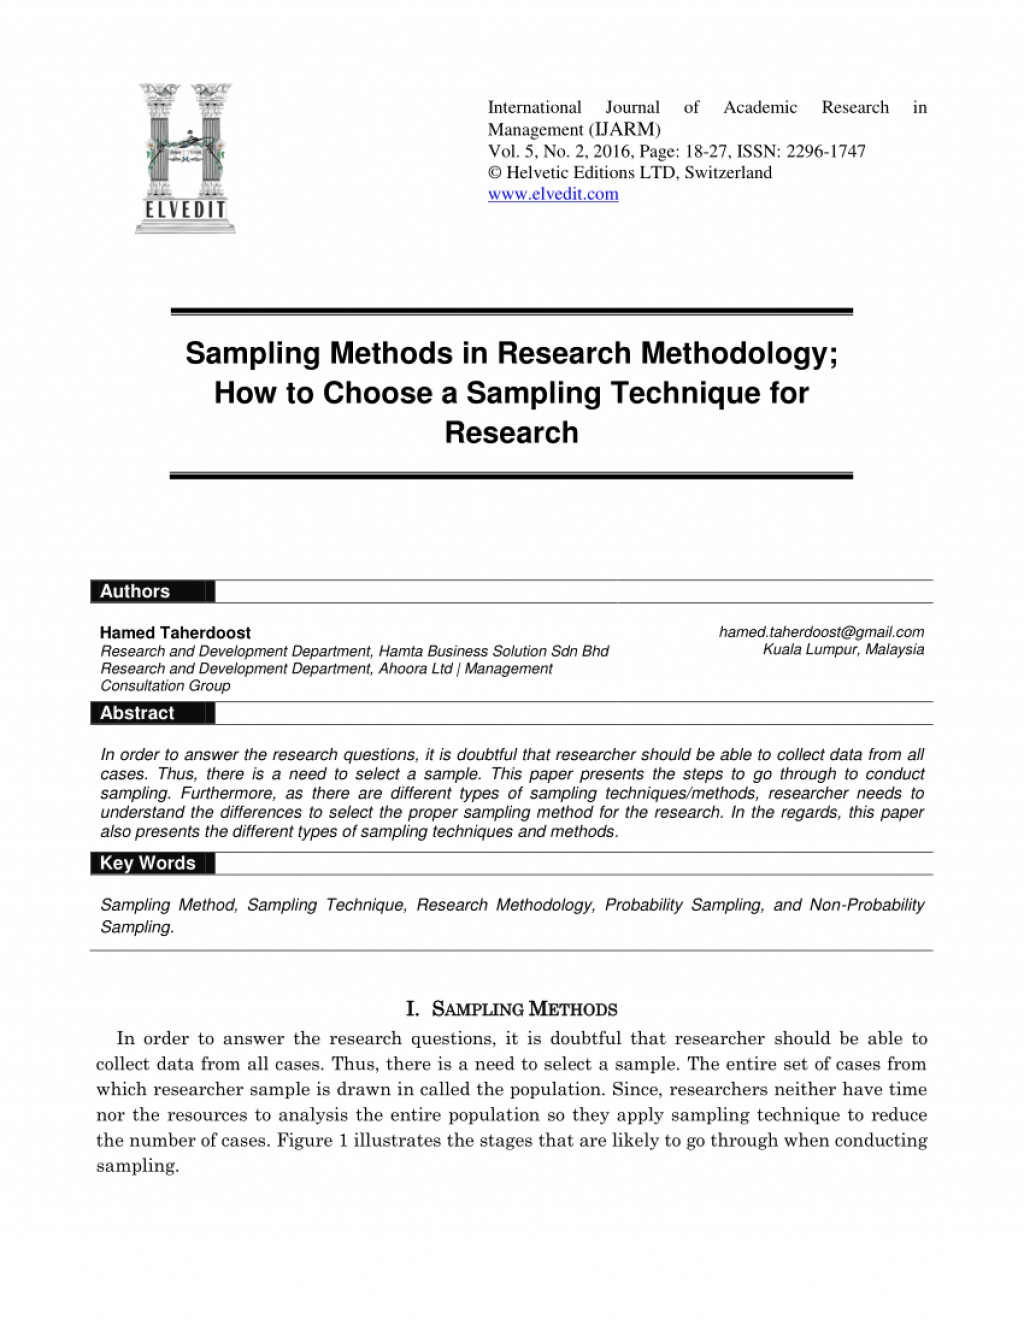 004 Research Paper Largepreview Methodology Sample Impressive For Writing Pdf Large